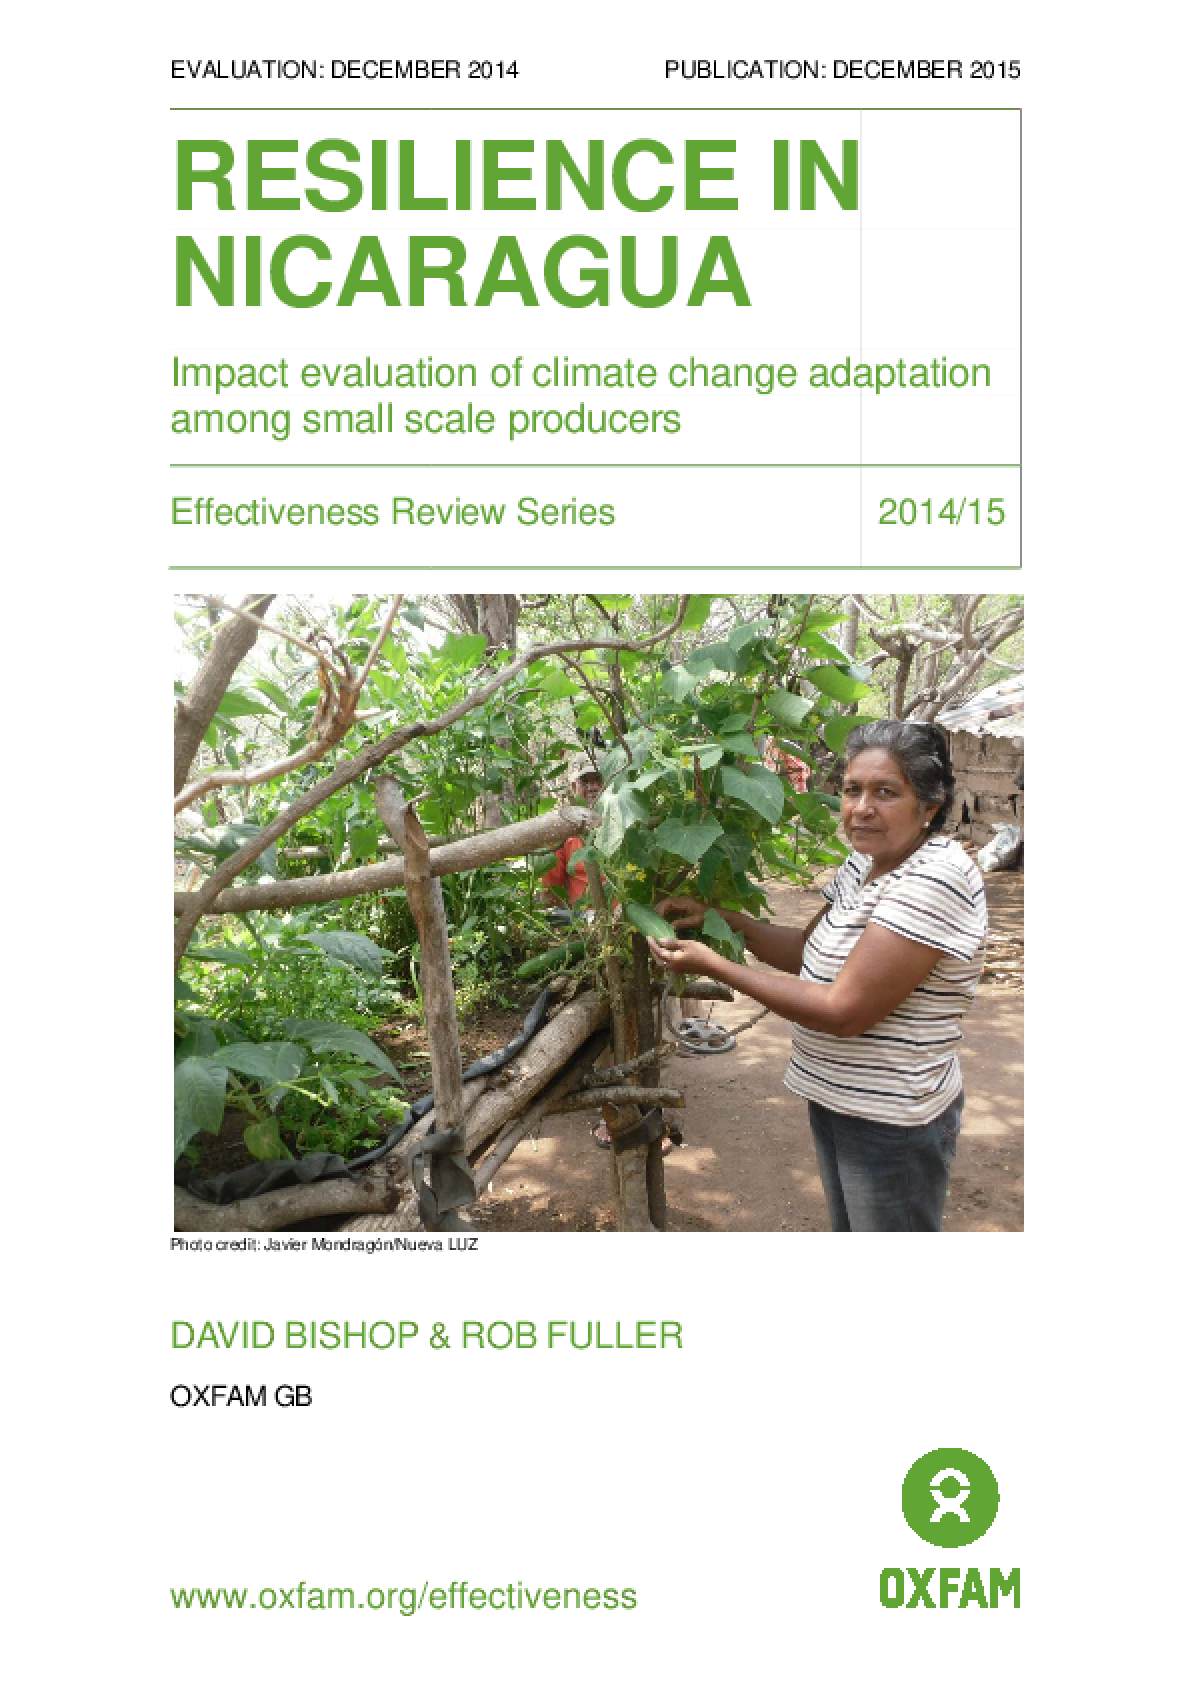 Resilience in Nicaragua: Impact evaluation of climate change adaptation among small scale producers